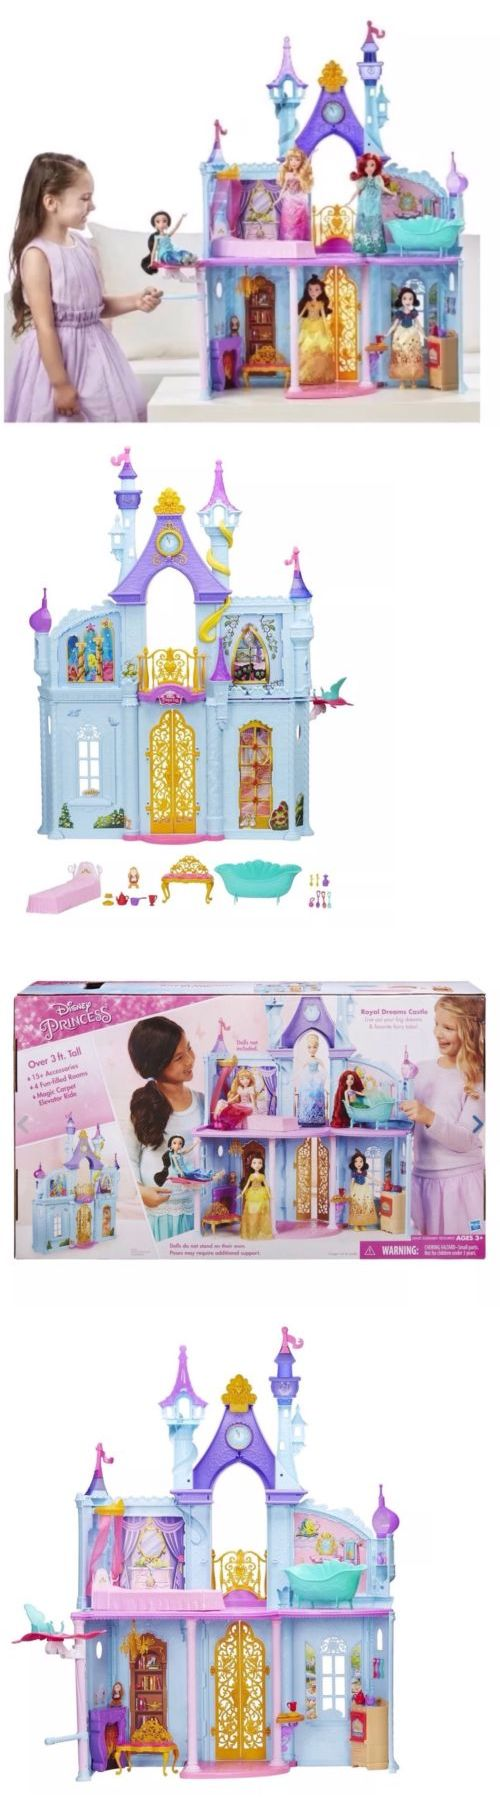 Disney com princess castle backgrounds disney princesses html code - Disney Princesses 146030 New Disney Princess Royal Dreams Castle Furnished Rooms Accessories Adventure